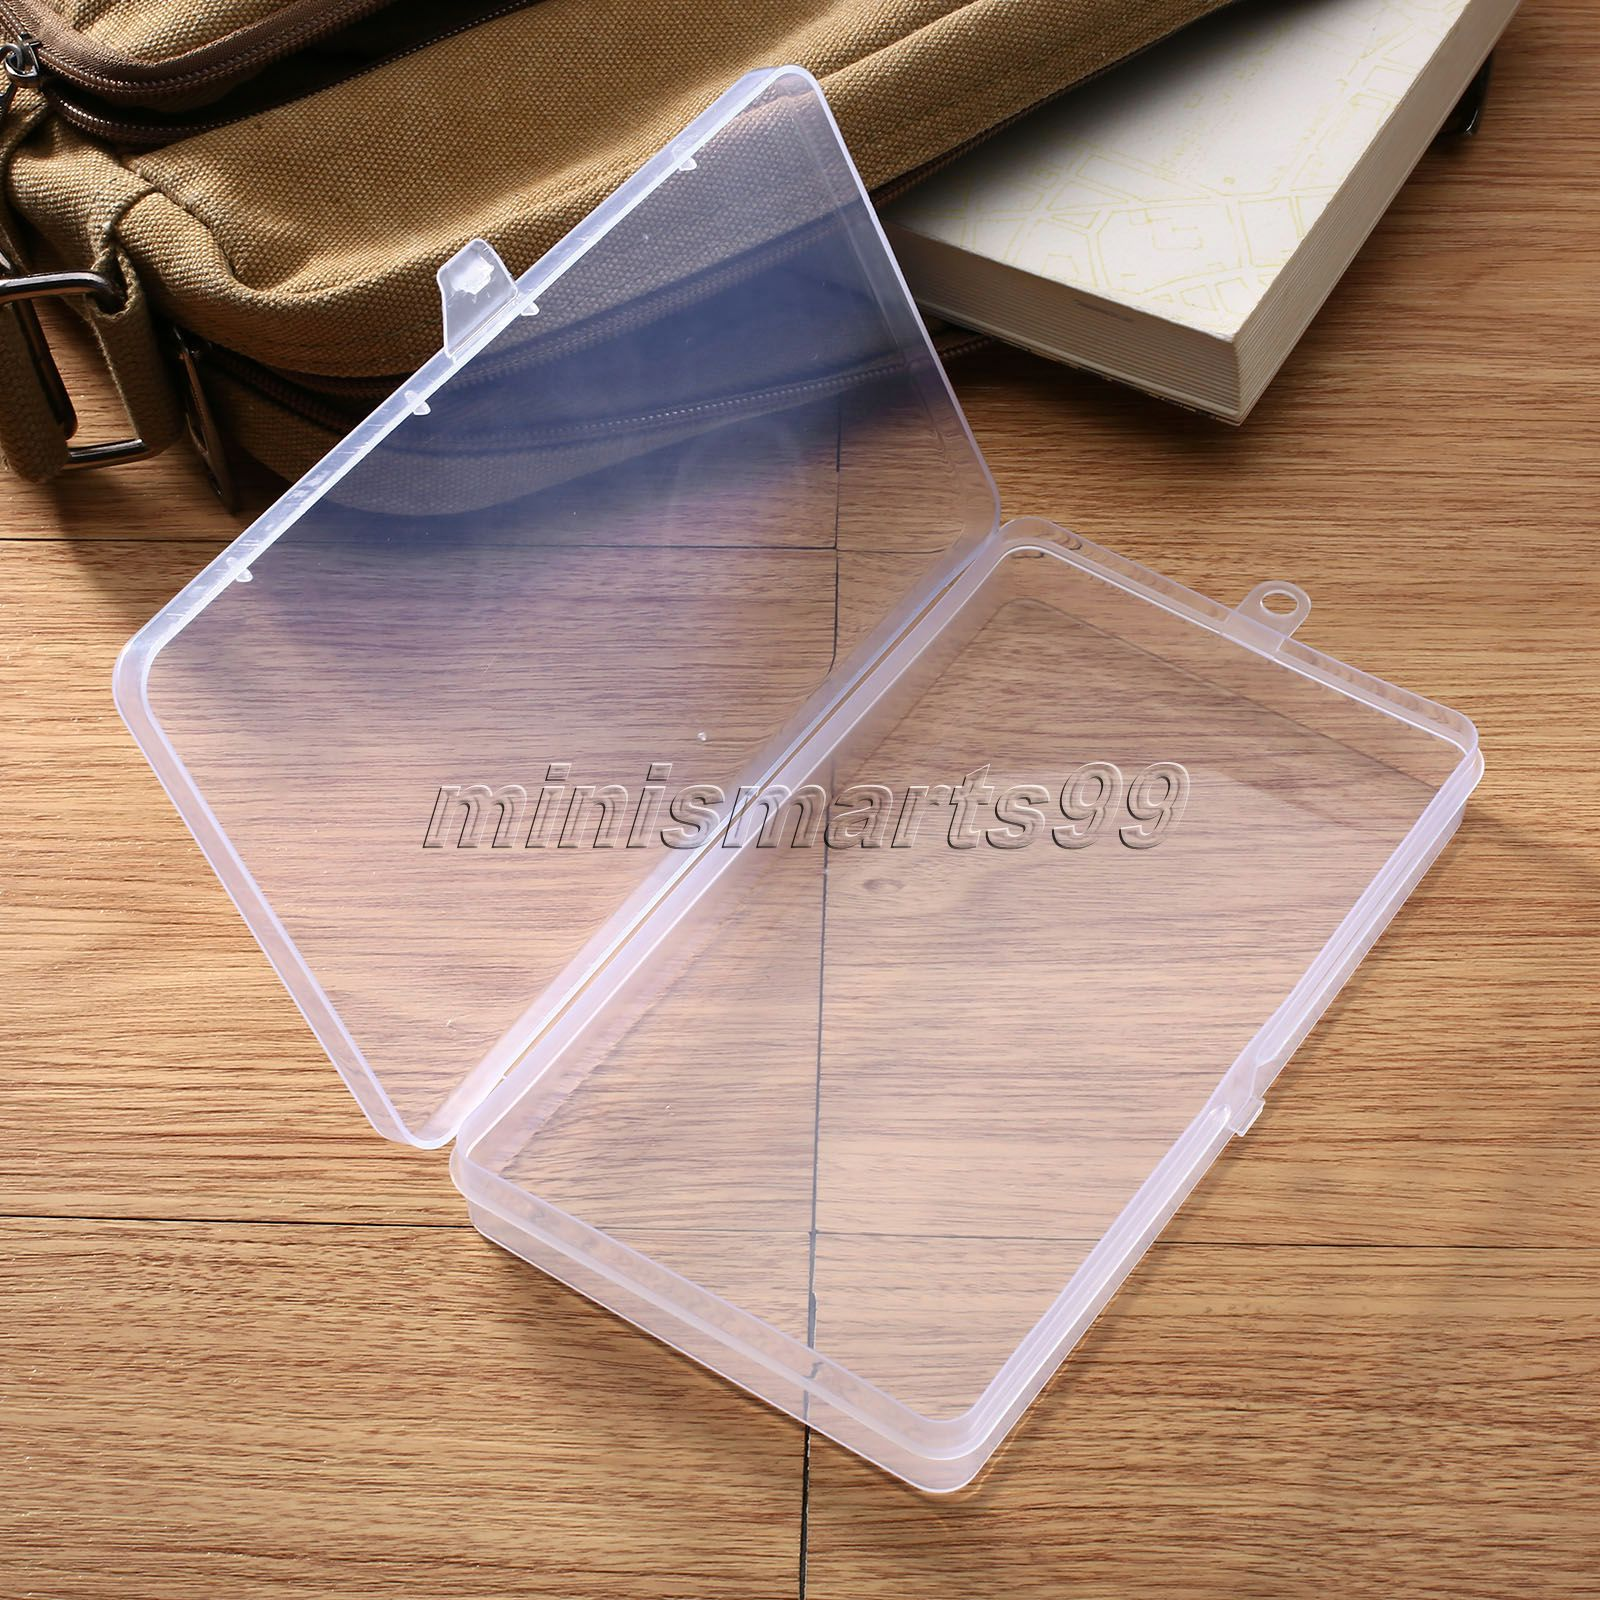 15 Articles To Help Organize Your Home For The New Year: 17.2 X9.8x2.1cm Storage Box Small Clear Plastic Box Bead